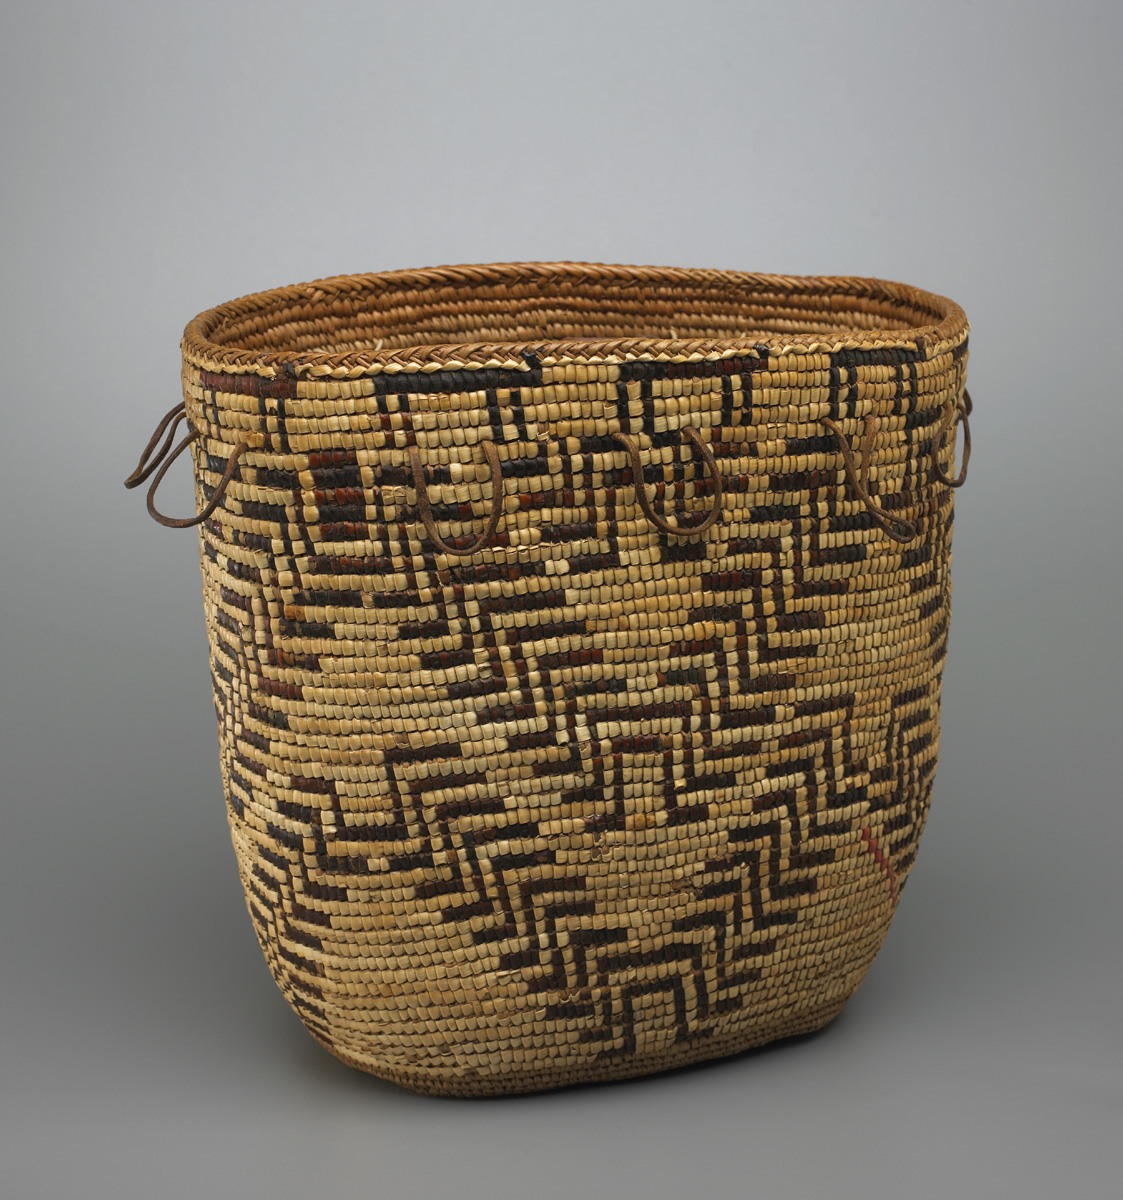 SAM Art: One last traditional basketmaker